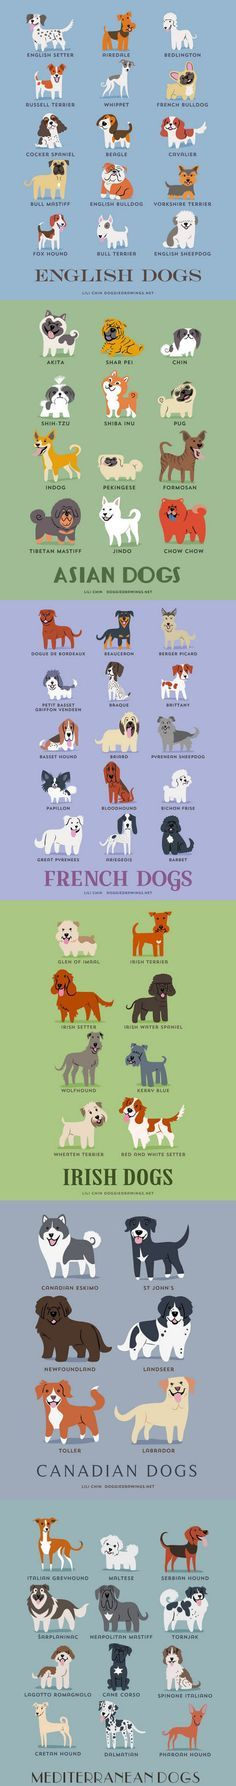 Dogs Of The World. Didn't realize how many dogs there were...wow!